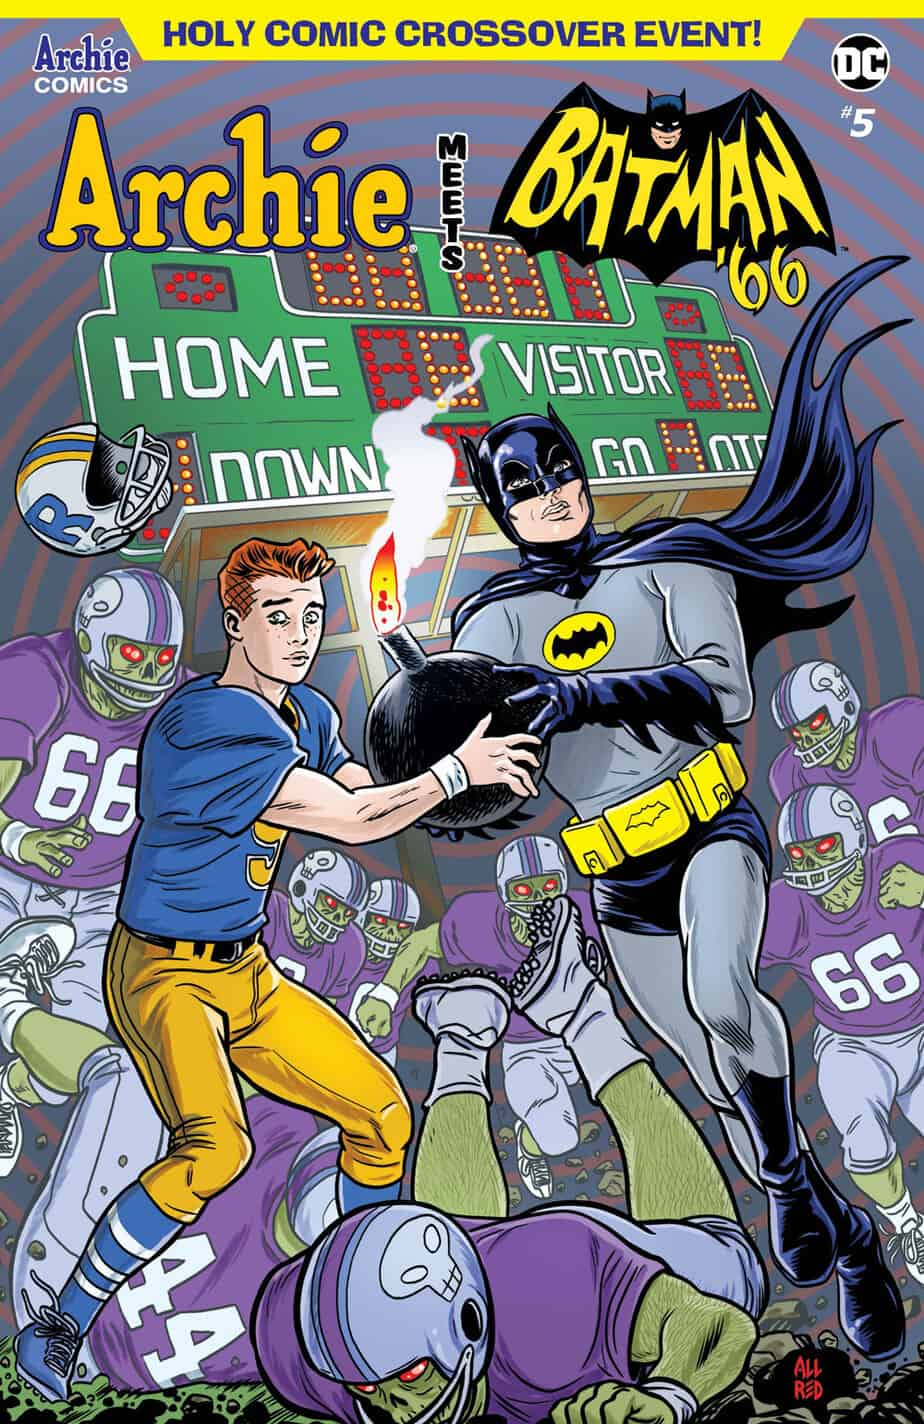 Archie Meets Batman '66 – Main Cover by Michael Allred & Laura Allred